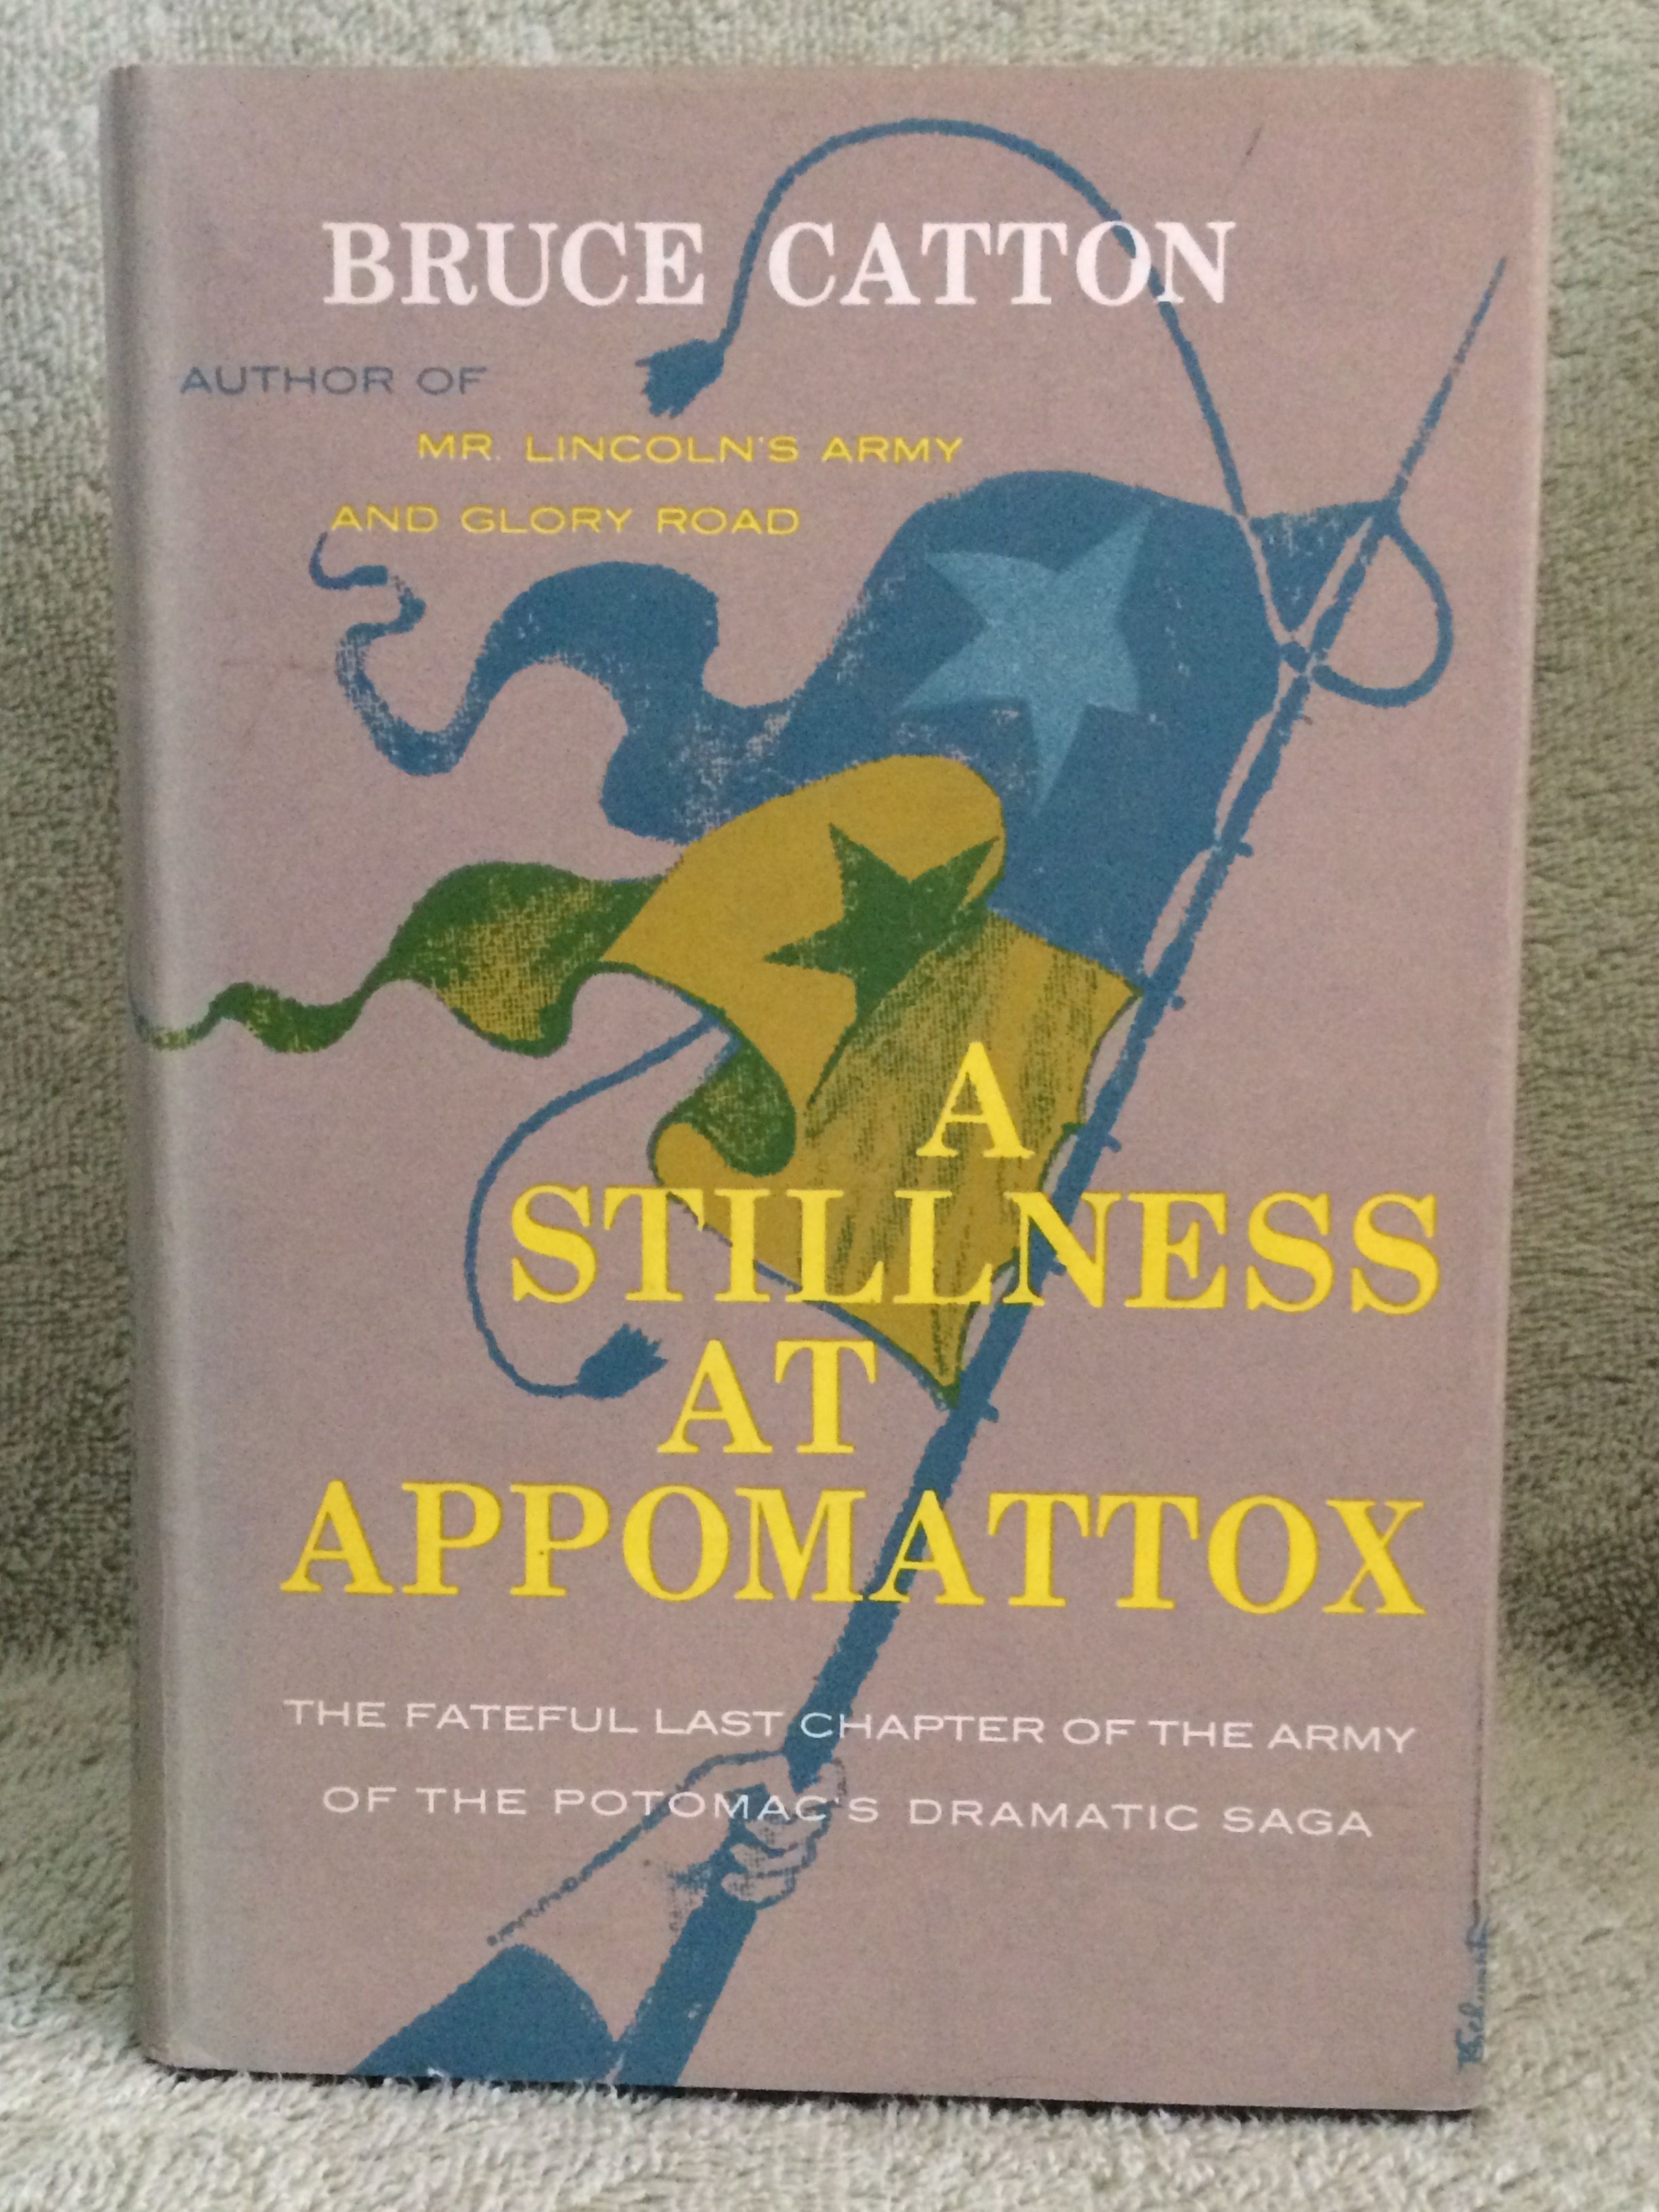 Book Review: Bruce Catton's A Stillness at Appomattox